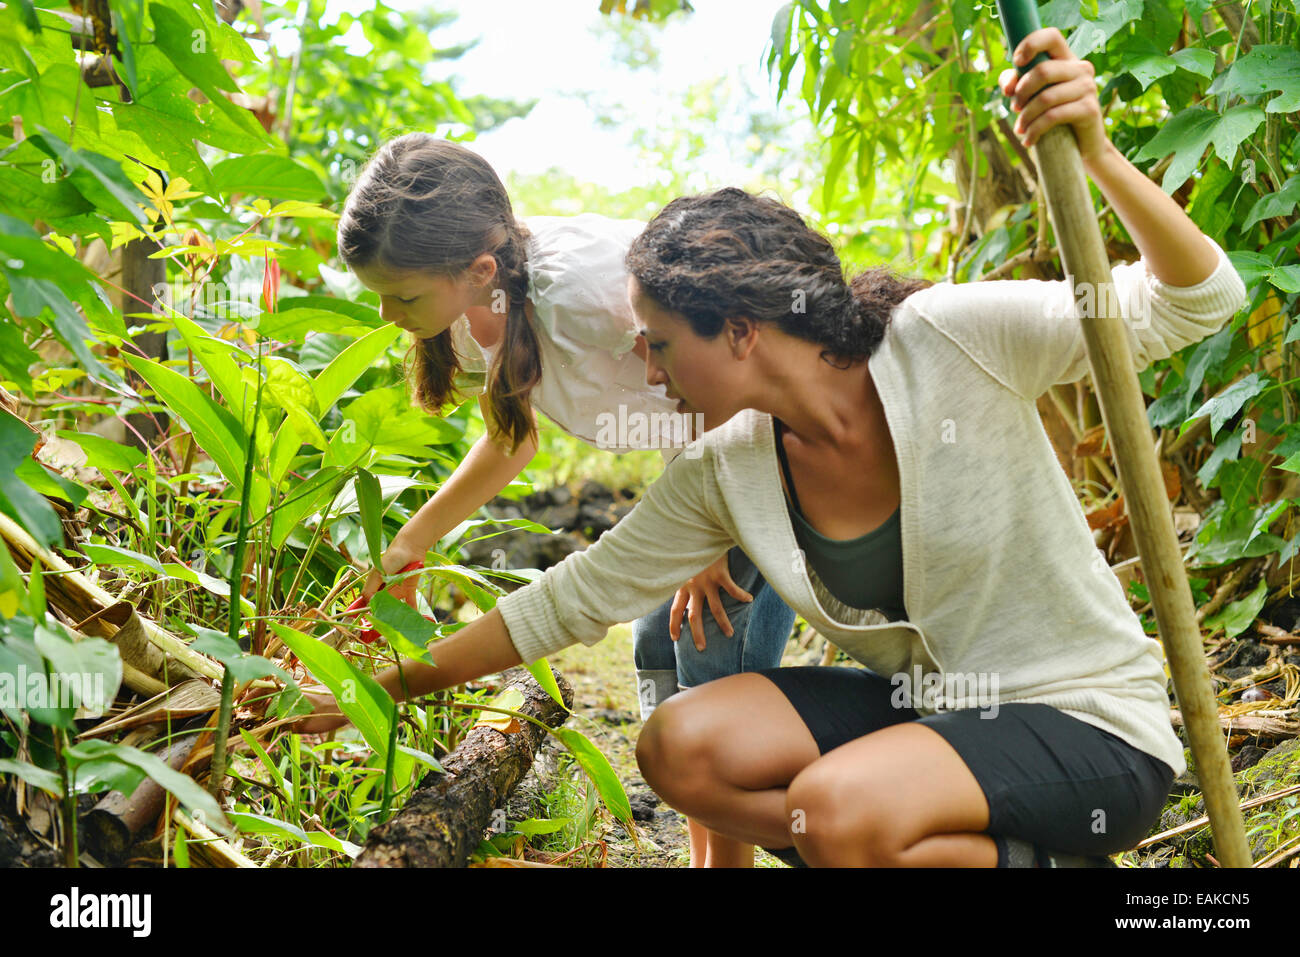 Woman and girl inspecting plants in garden - Stock Image